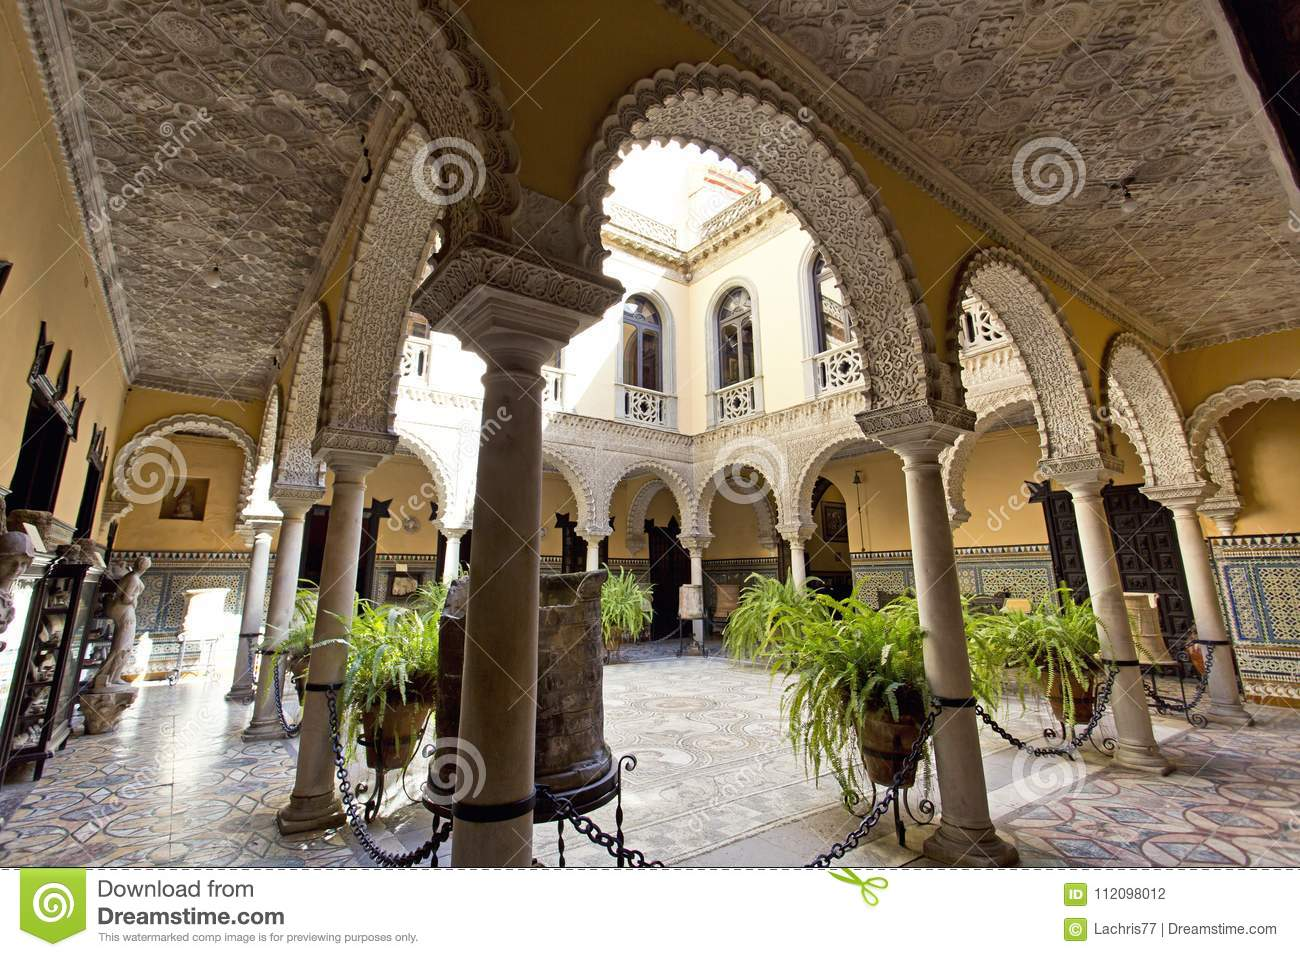 Palace of the Countess of Lebrija in Seville